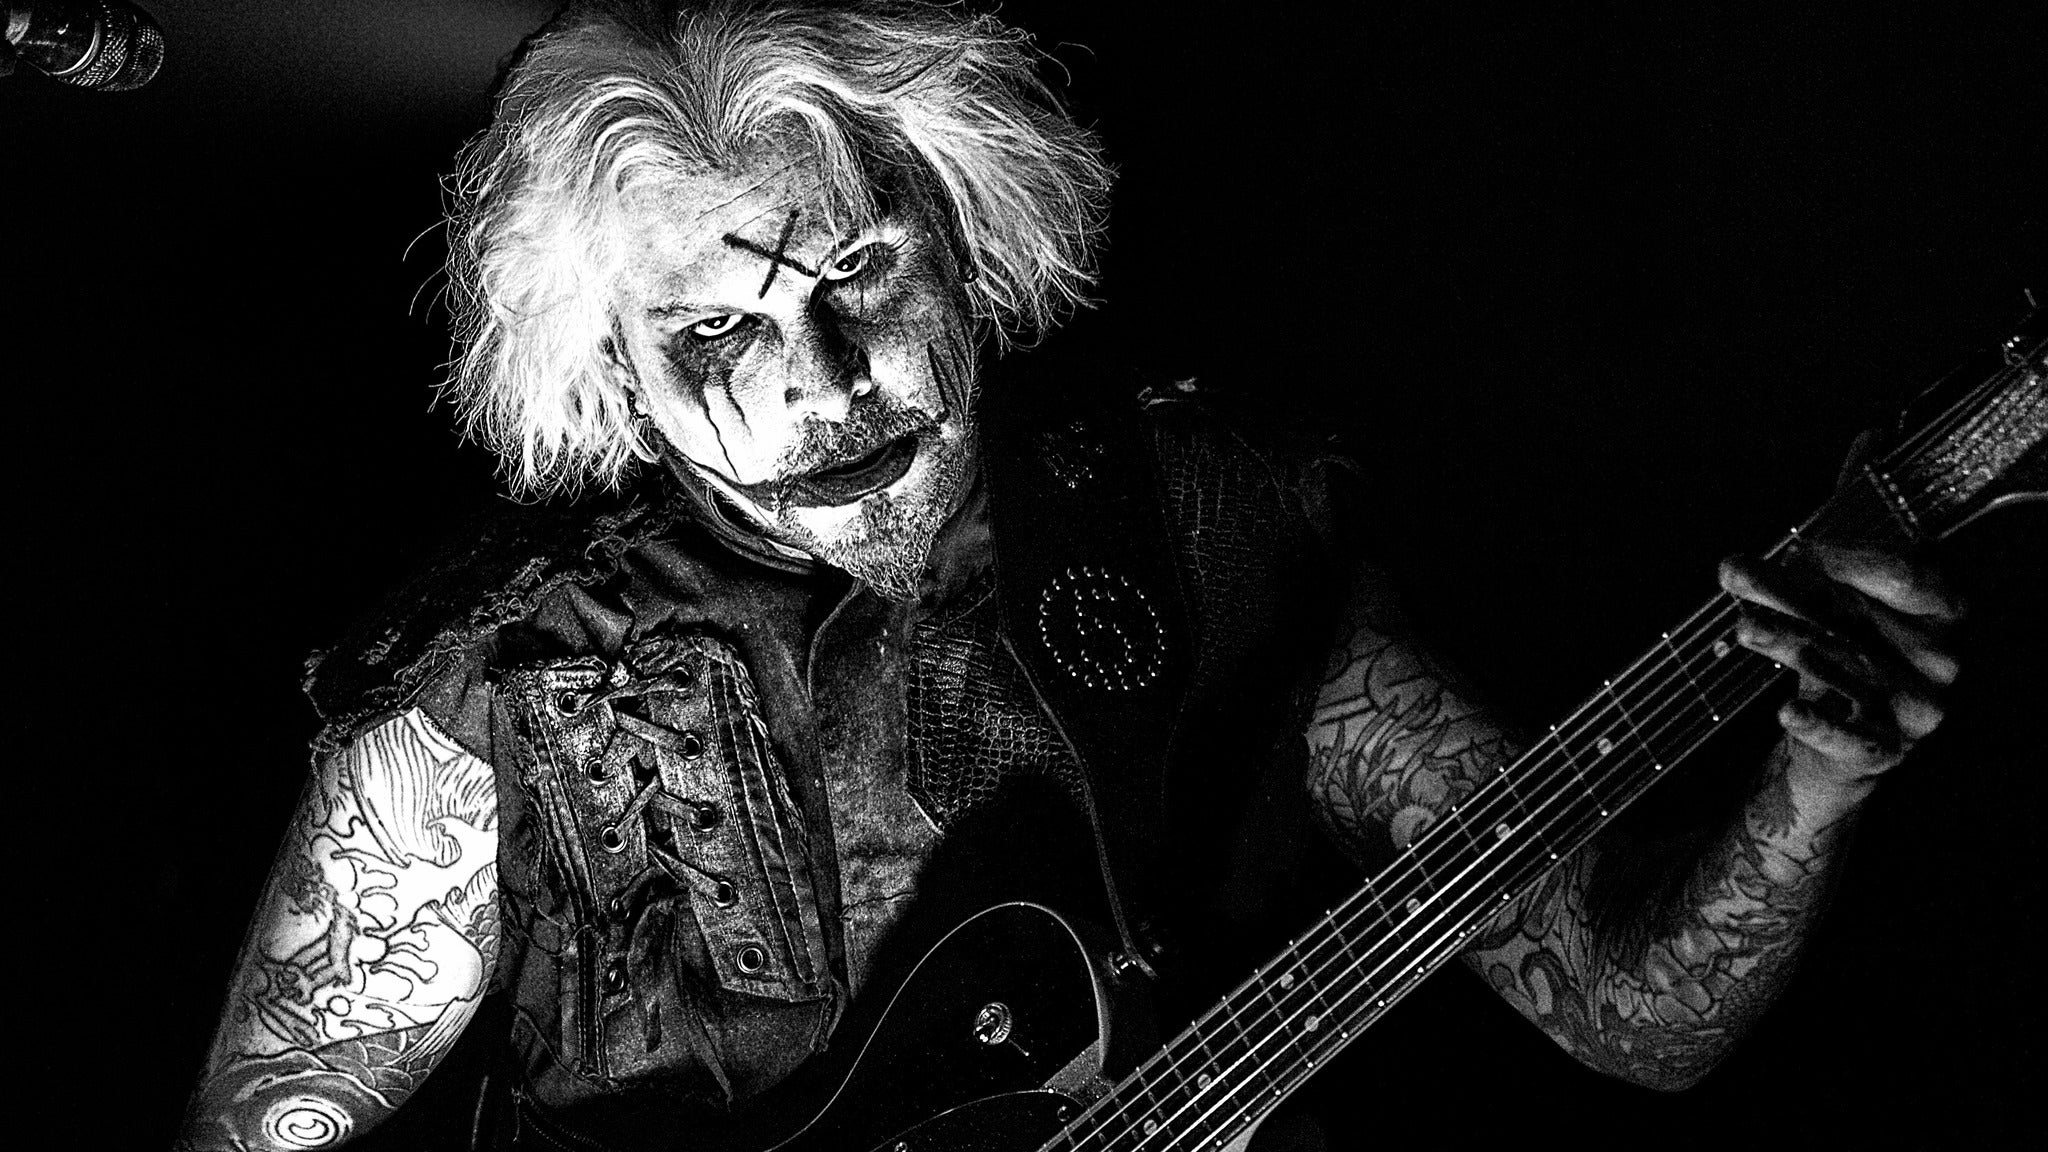 John 5, Jared Nichols James, Reverend Jack